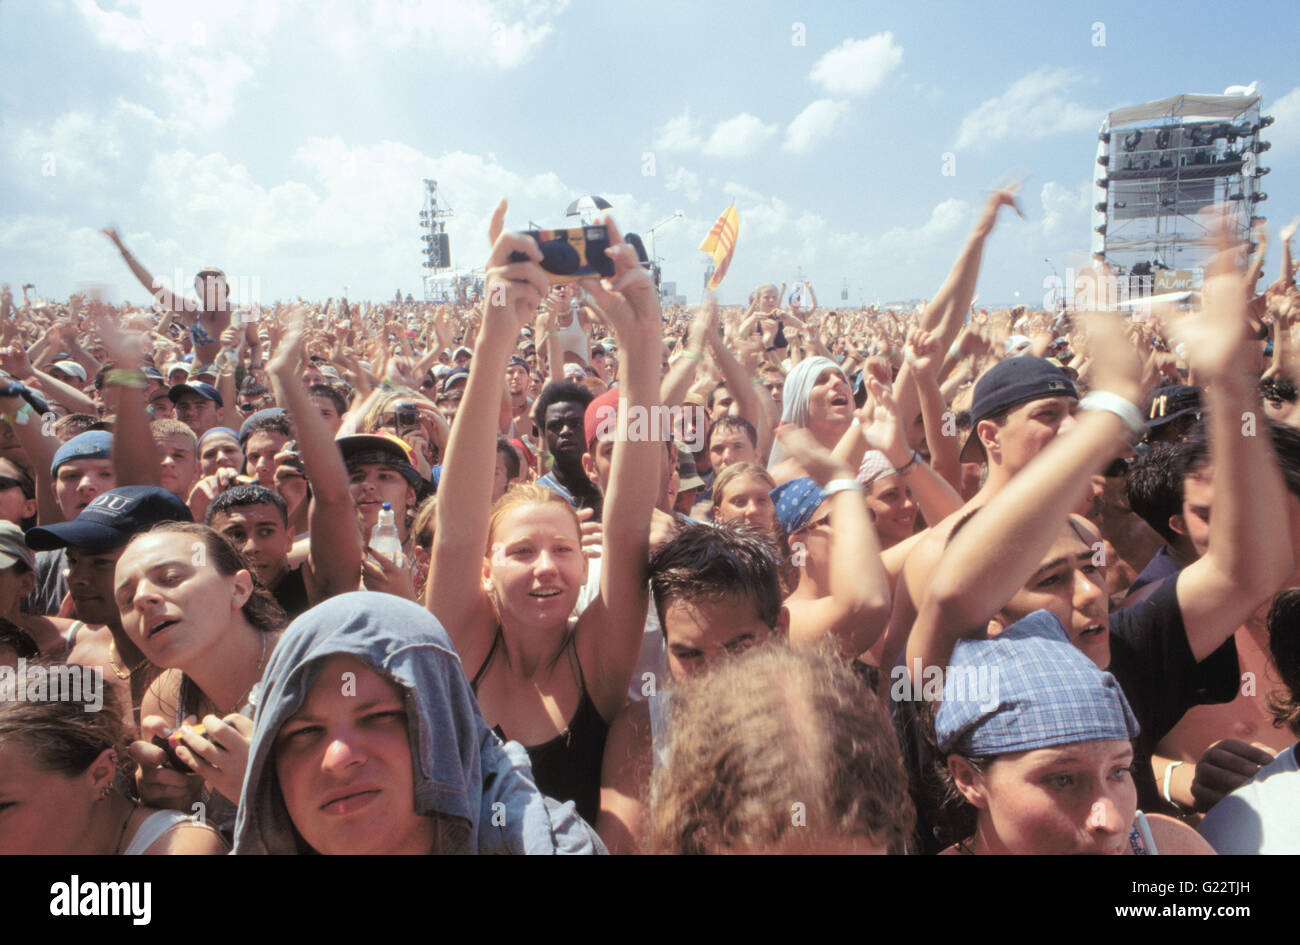 Fans Applauding The Band At Woodstock 99 Festival Rome New York